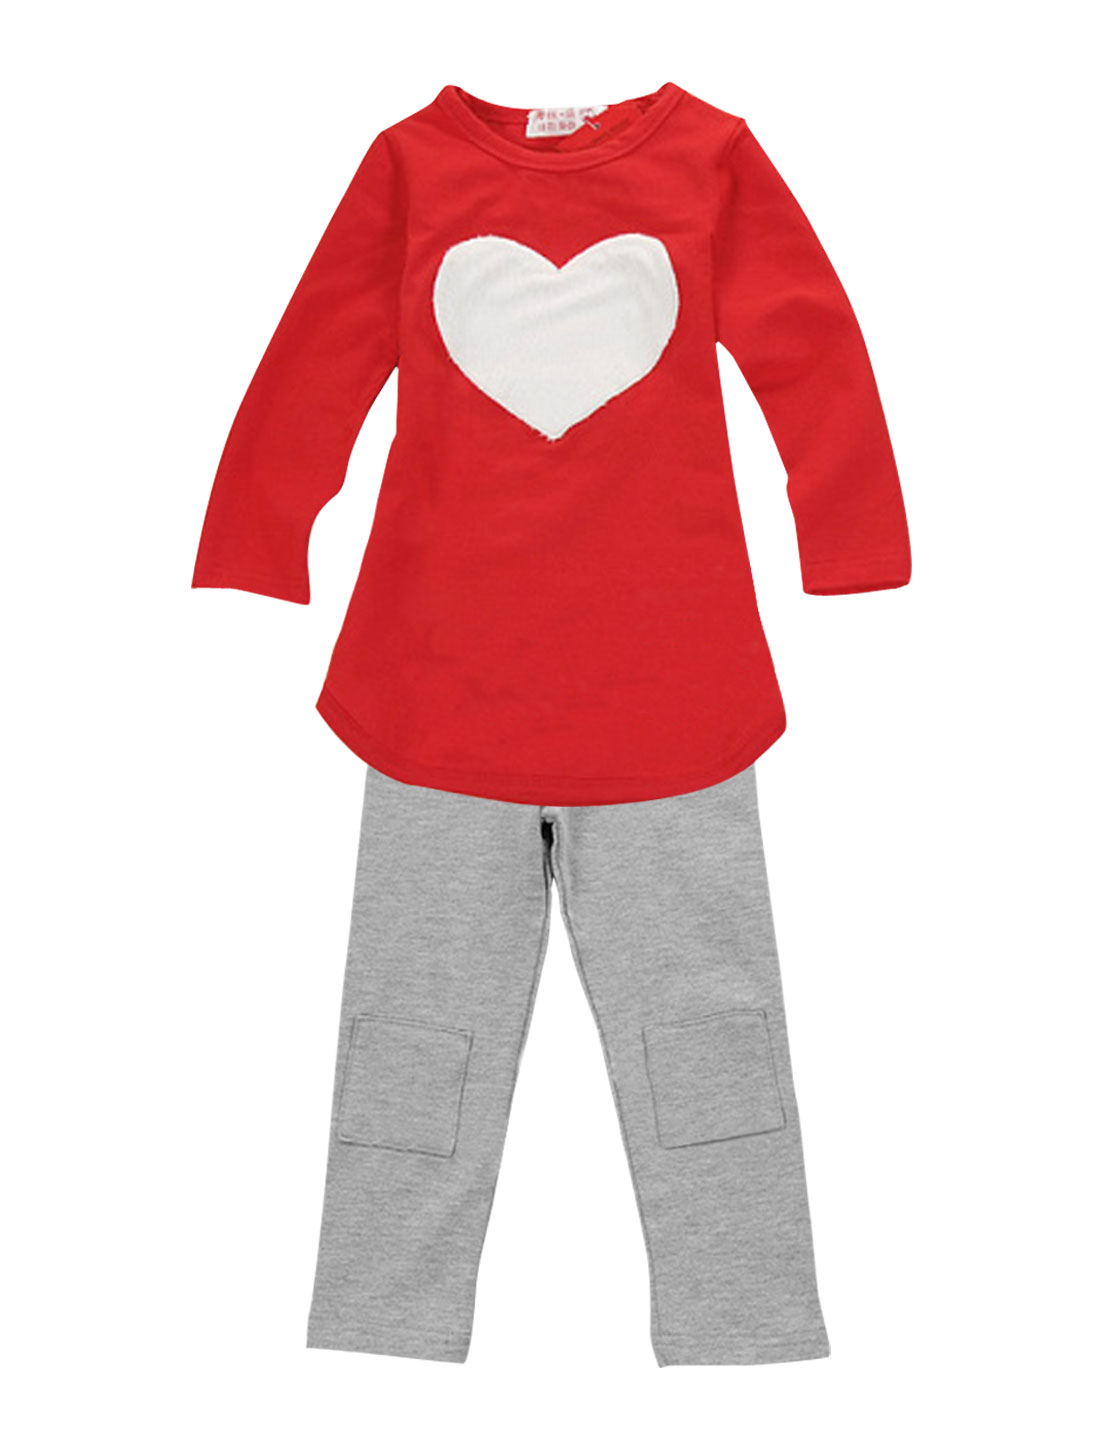 Girls Heart Shape Panel Top w Elastic Waist Pants 3-Pieces Sets Red Gray 3T